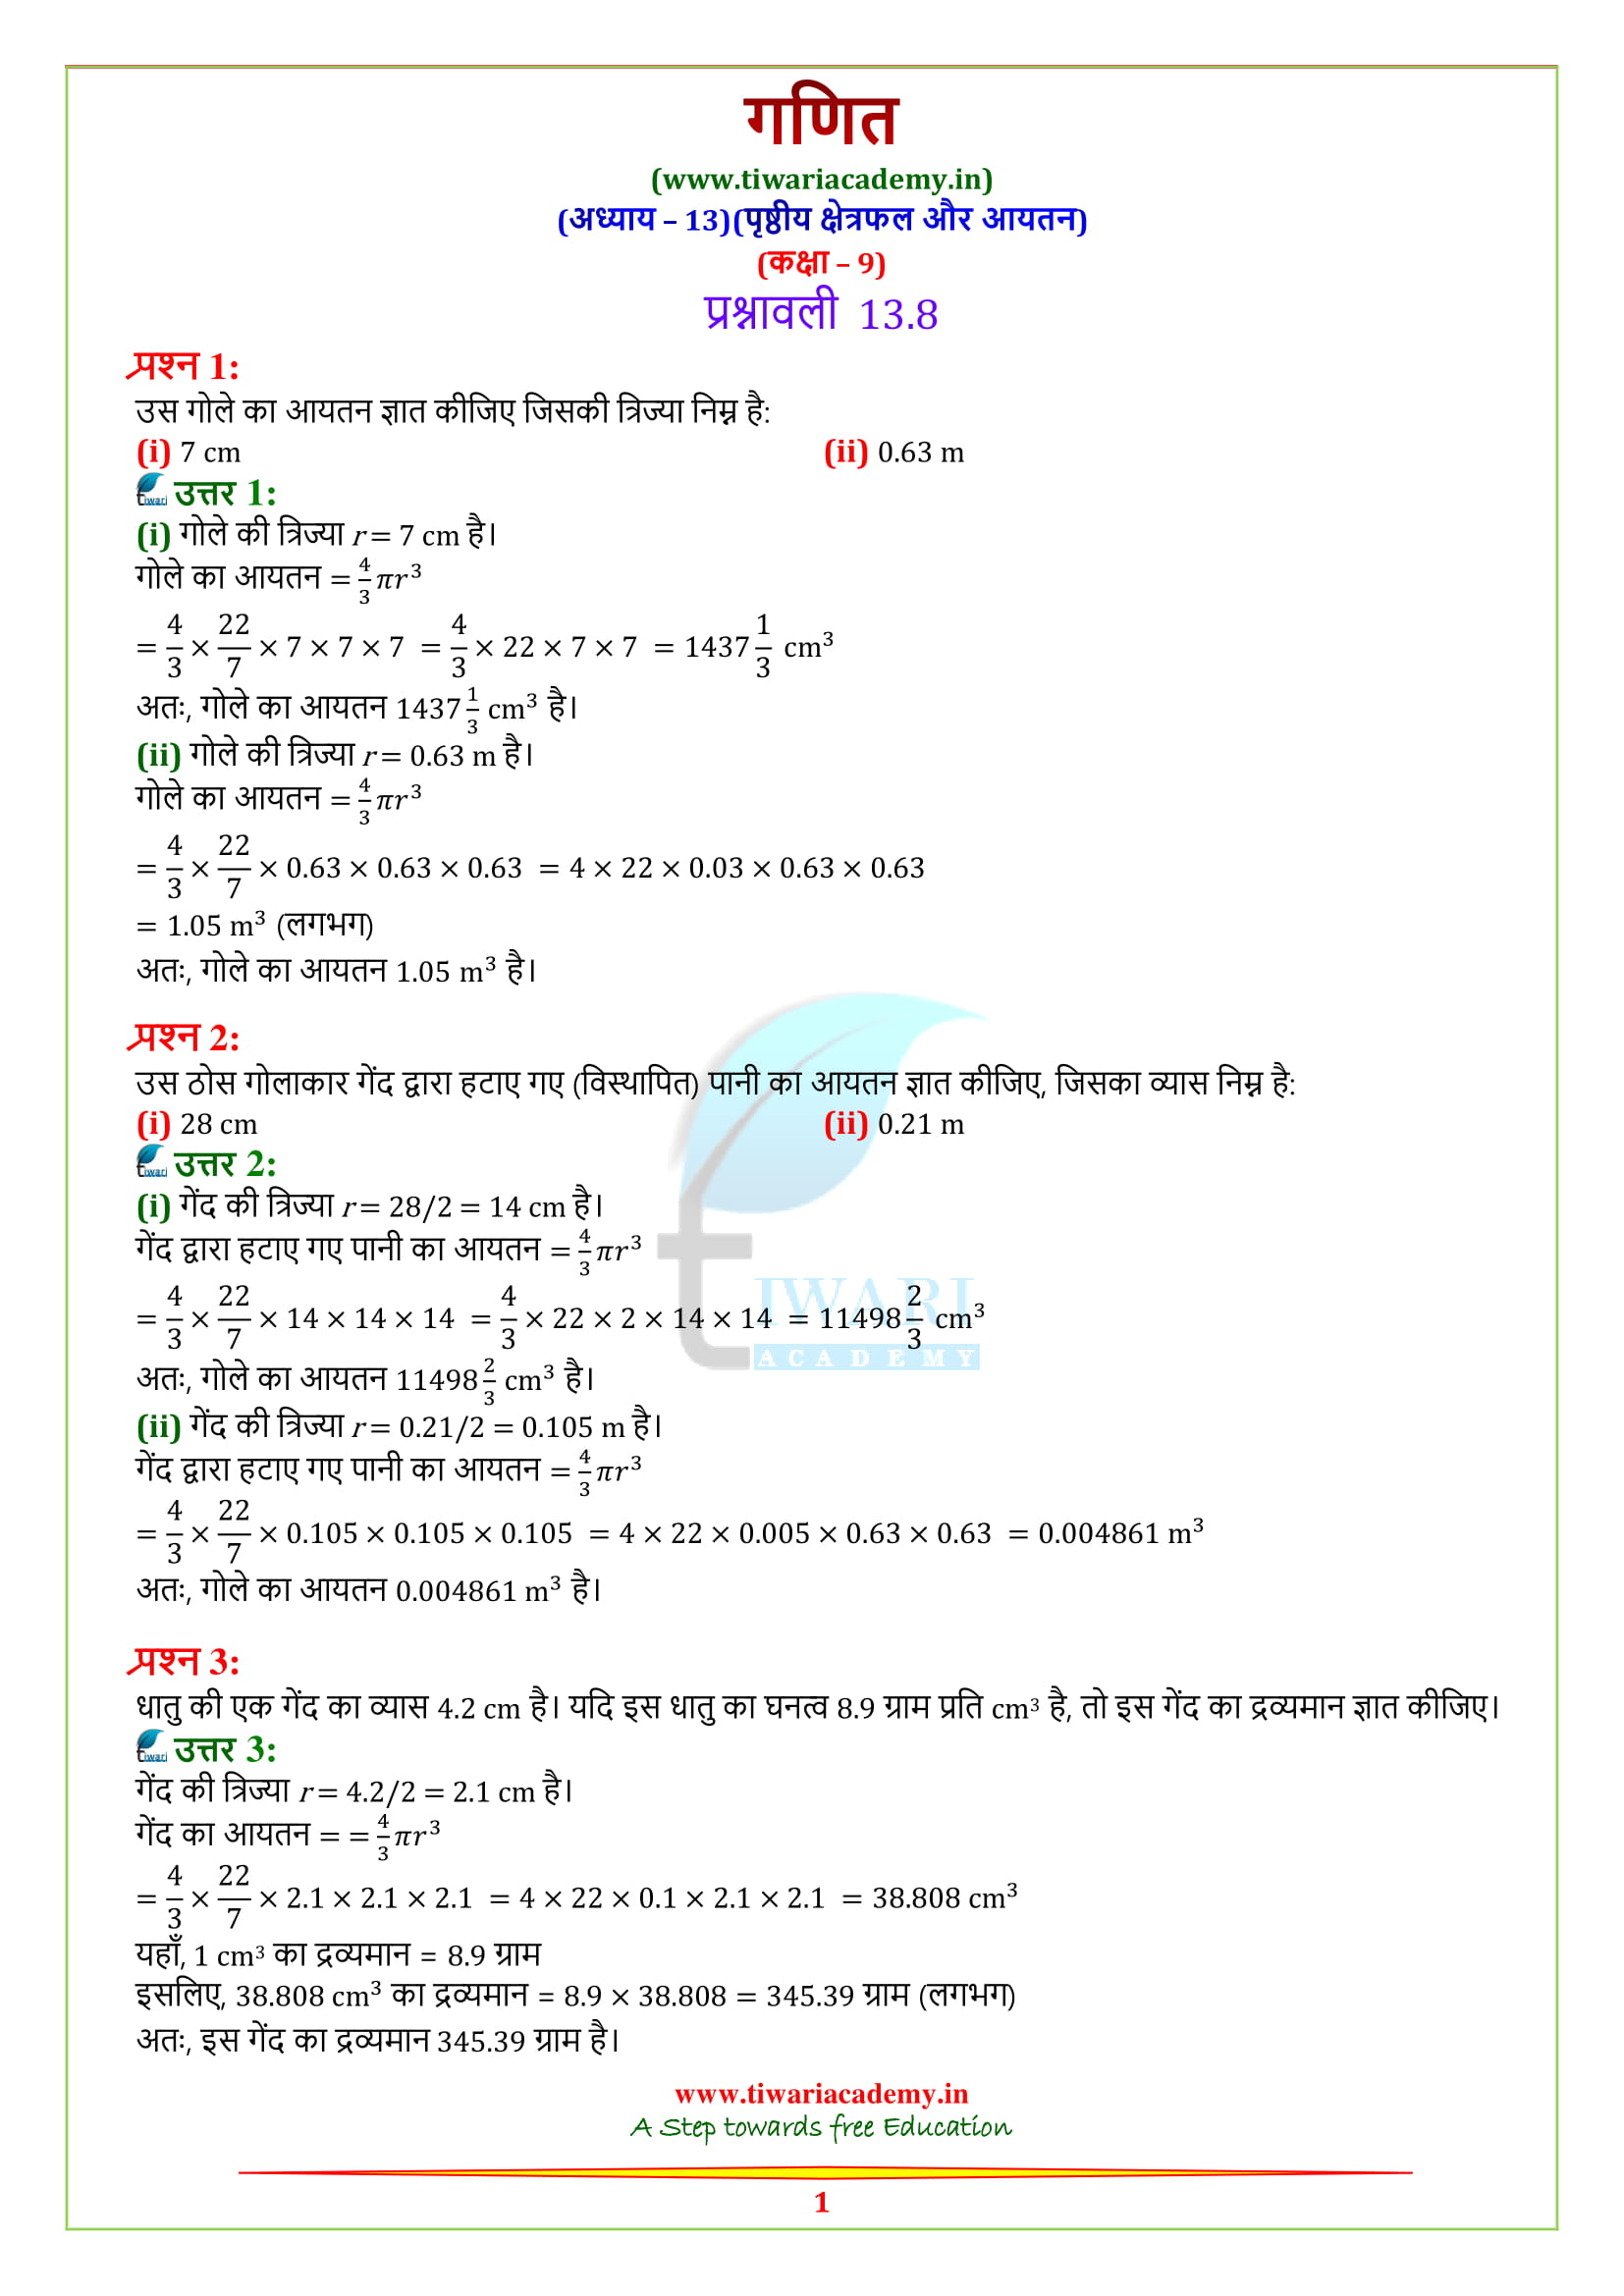 NCERT Solutions for class 9 Maths Exercise 13.8 updated for 2018-19